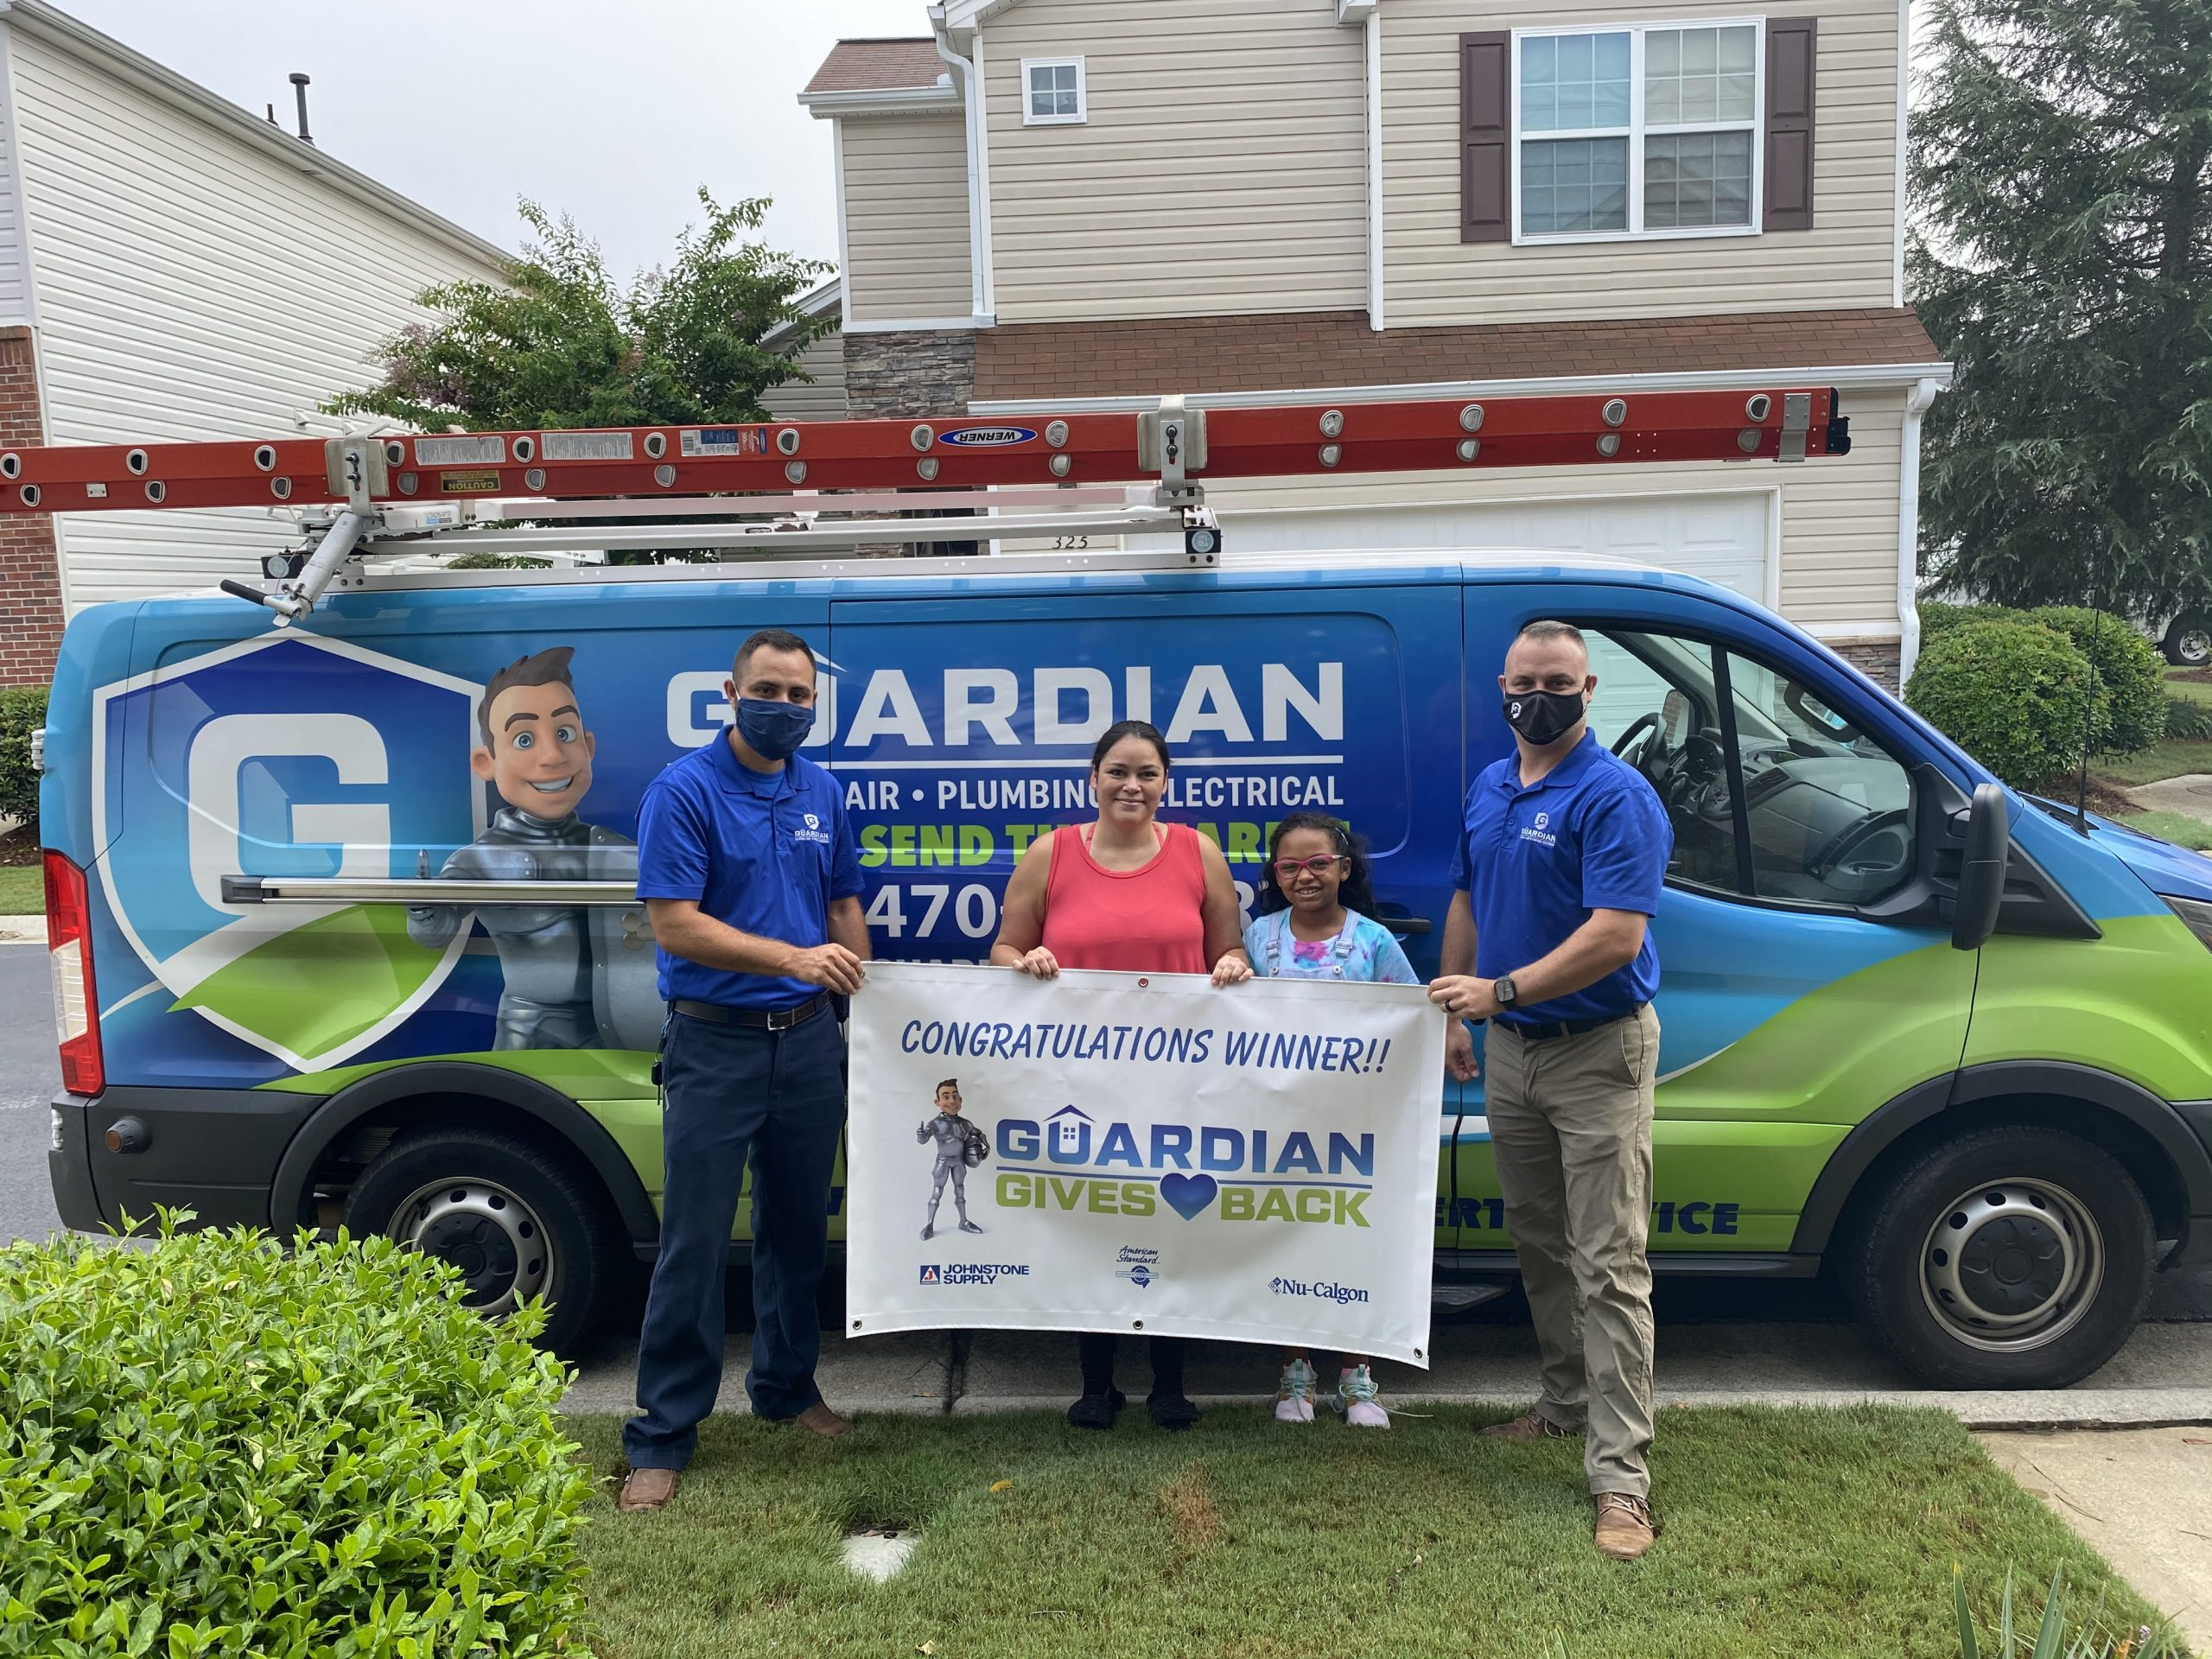 Guardian Gives Back Free HVAC System